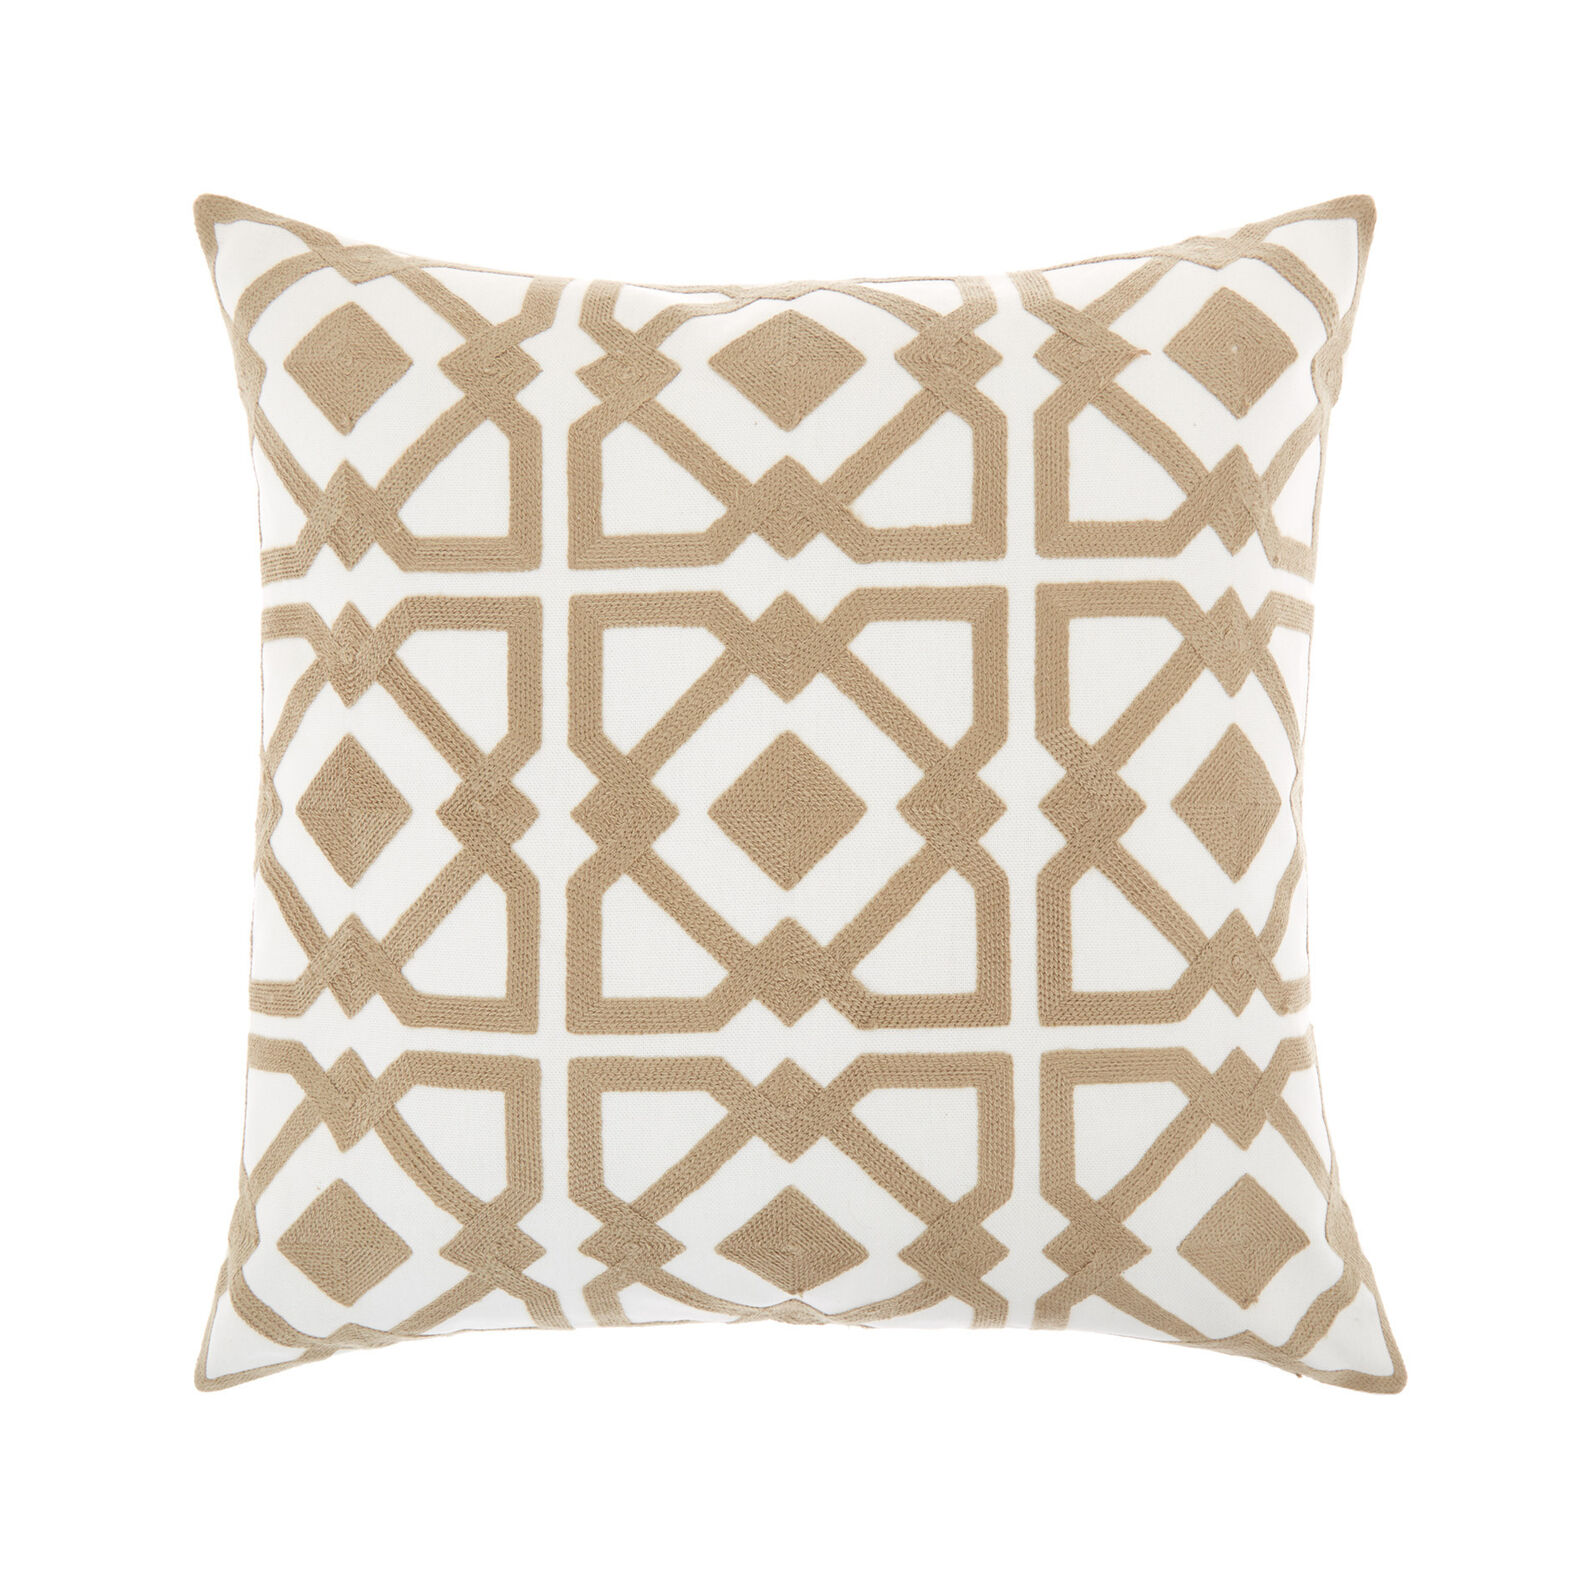 Embroidered cotton cushion (45x45cm)